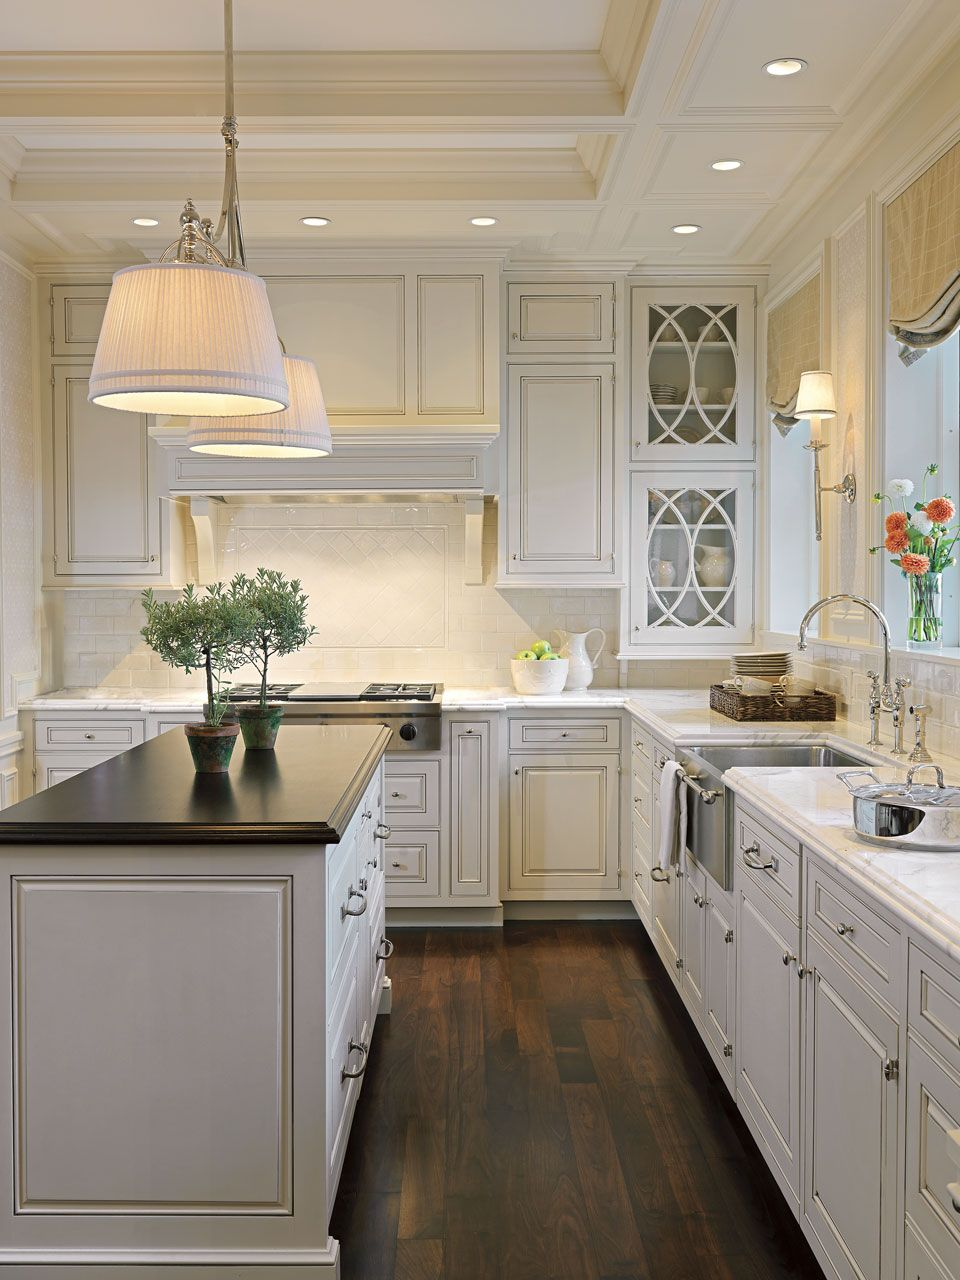 Window kitchen cabinet doors  a window above the sink looking out to a big back yard a forest of